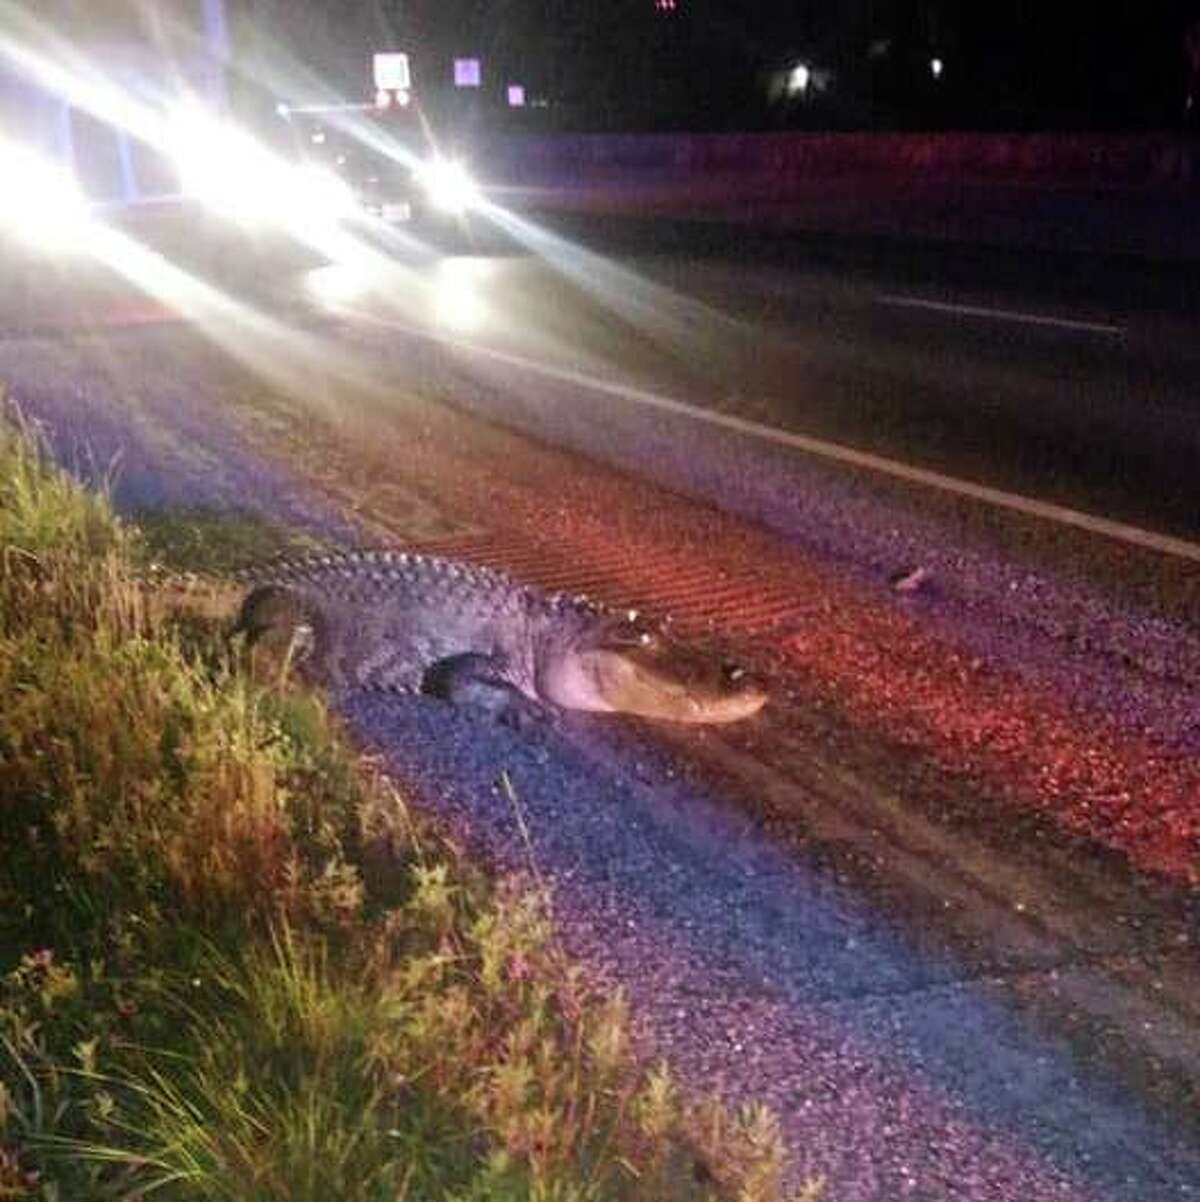 A massive alligator stopped traffic on US 59 near the SH 105 intersection in Cleveland, Monday, April 30, 2018.